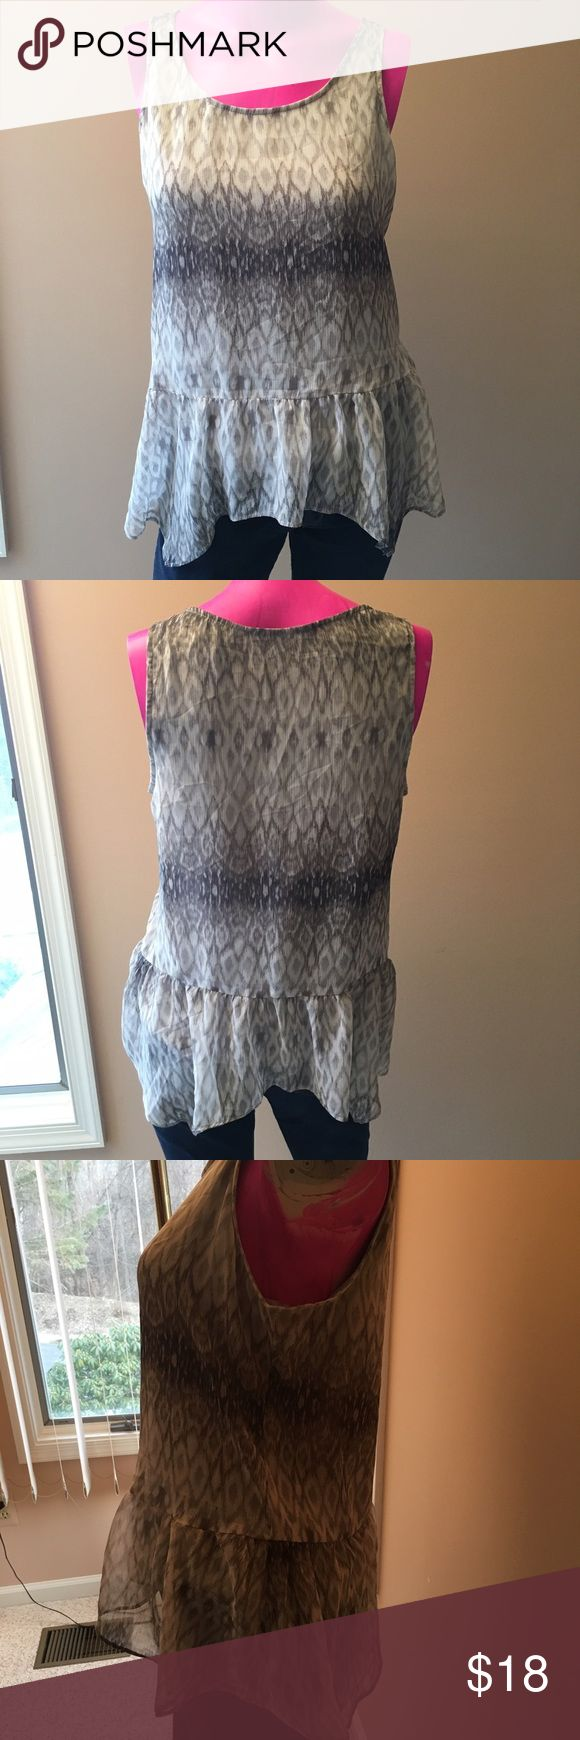 🆕Express Print Tank Top Gray diamond print chiffon ruffle bottom tank top. Full back. Excellent condition, like new. Great for work or a night out! Express Tops Tank Tops